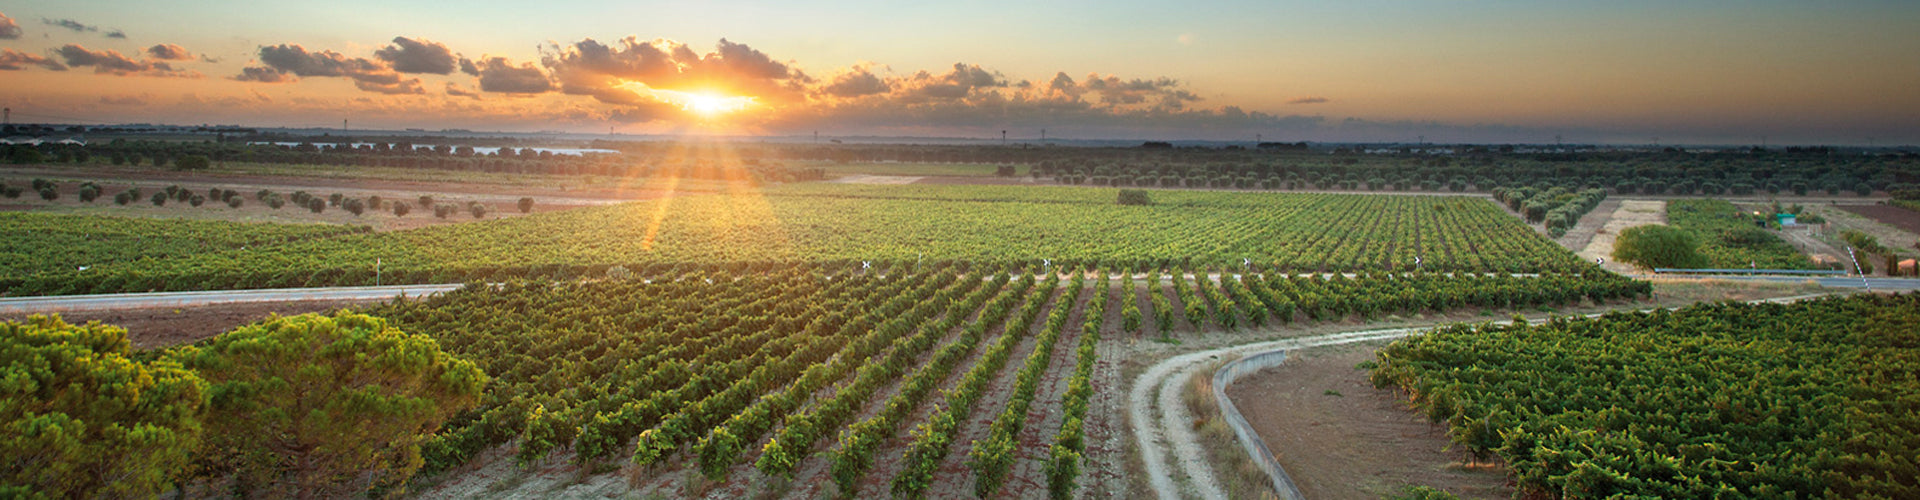 Cantele Vineyards in Puglia, Southern Italy